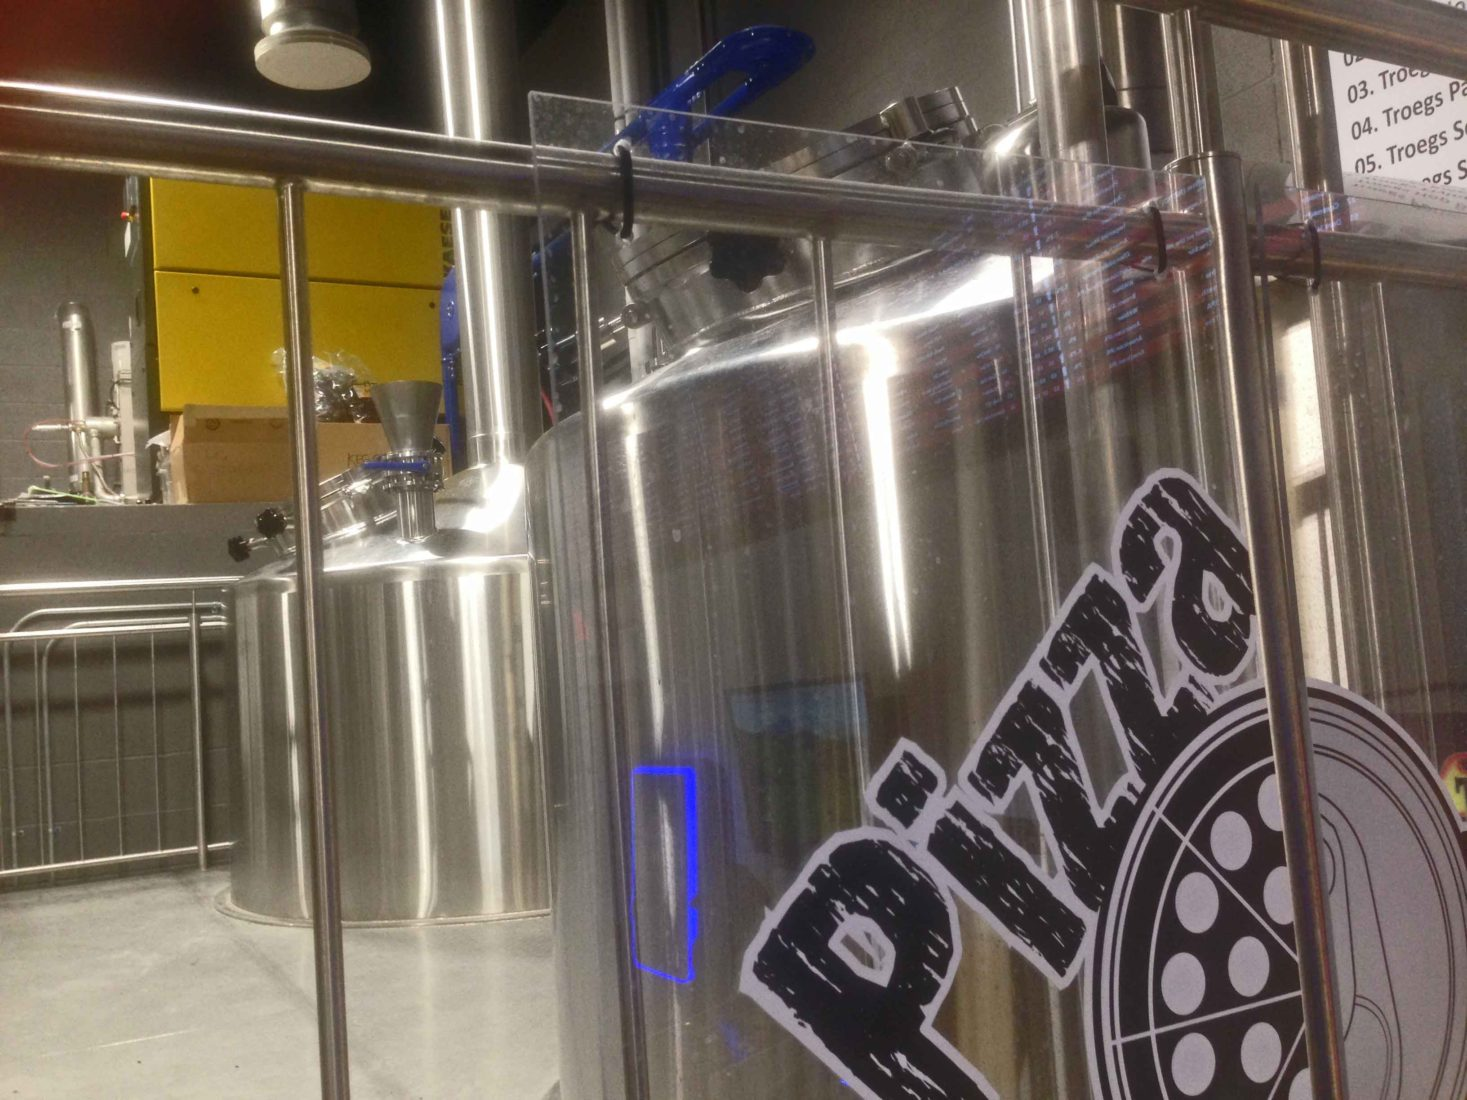 185. Pizza Boy Brewing, Camp Hill PA 2014